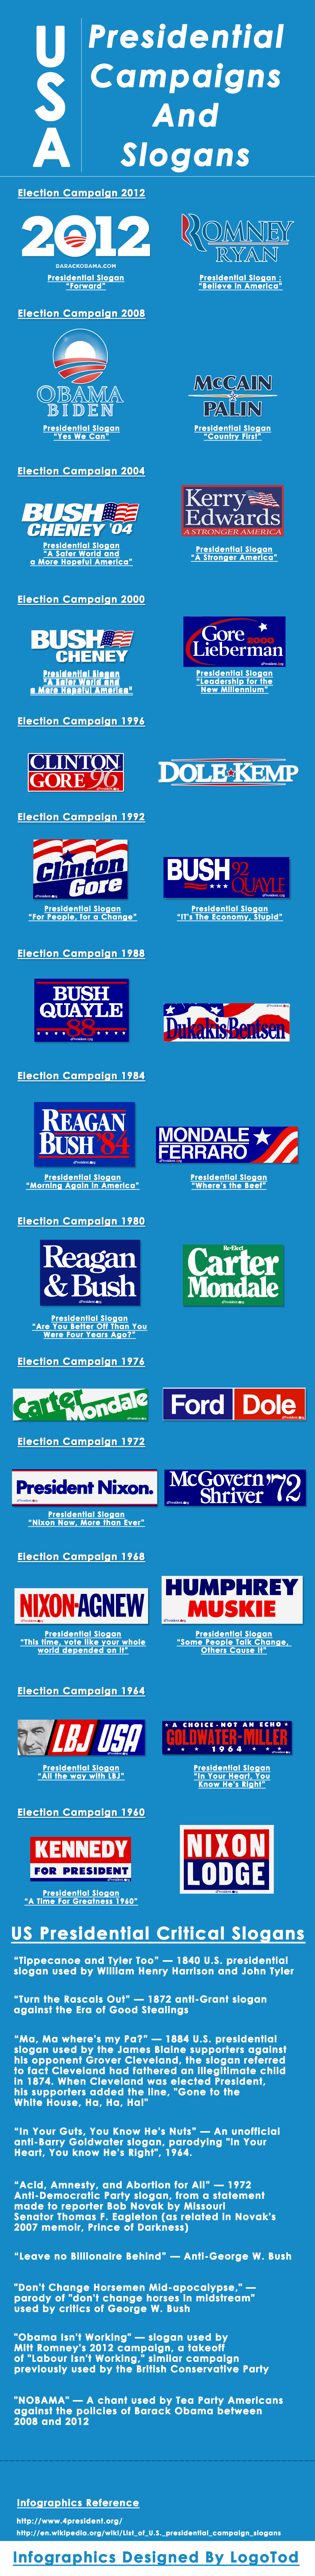 USA Presidential Campaigns And Slogans